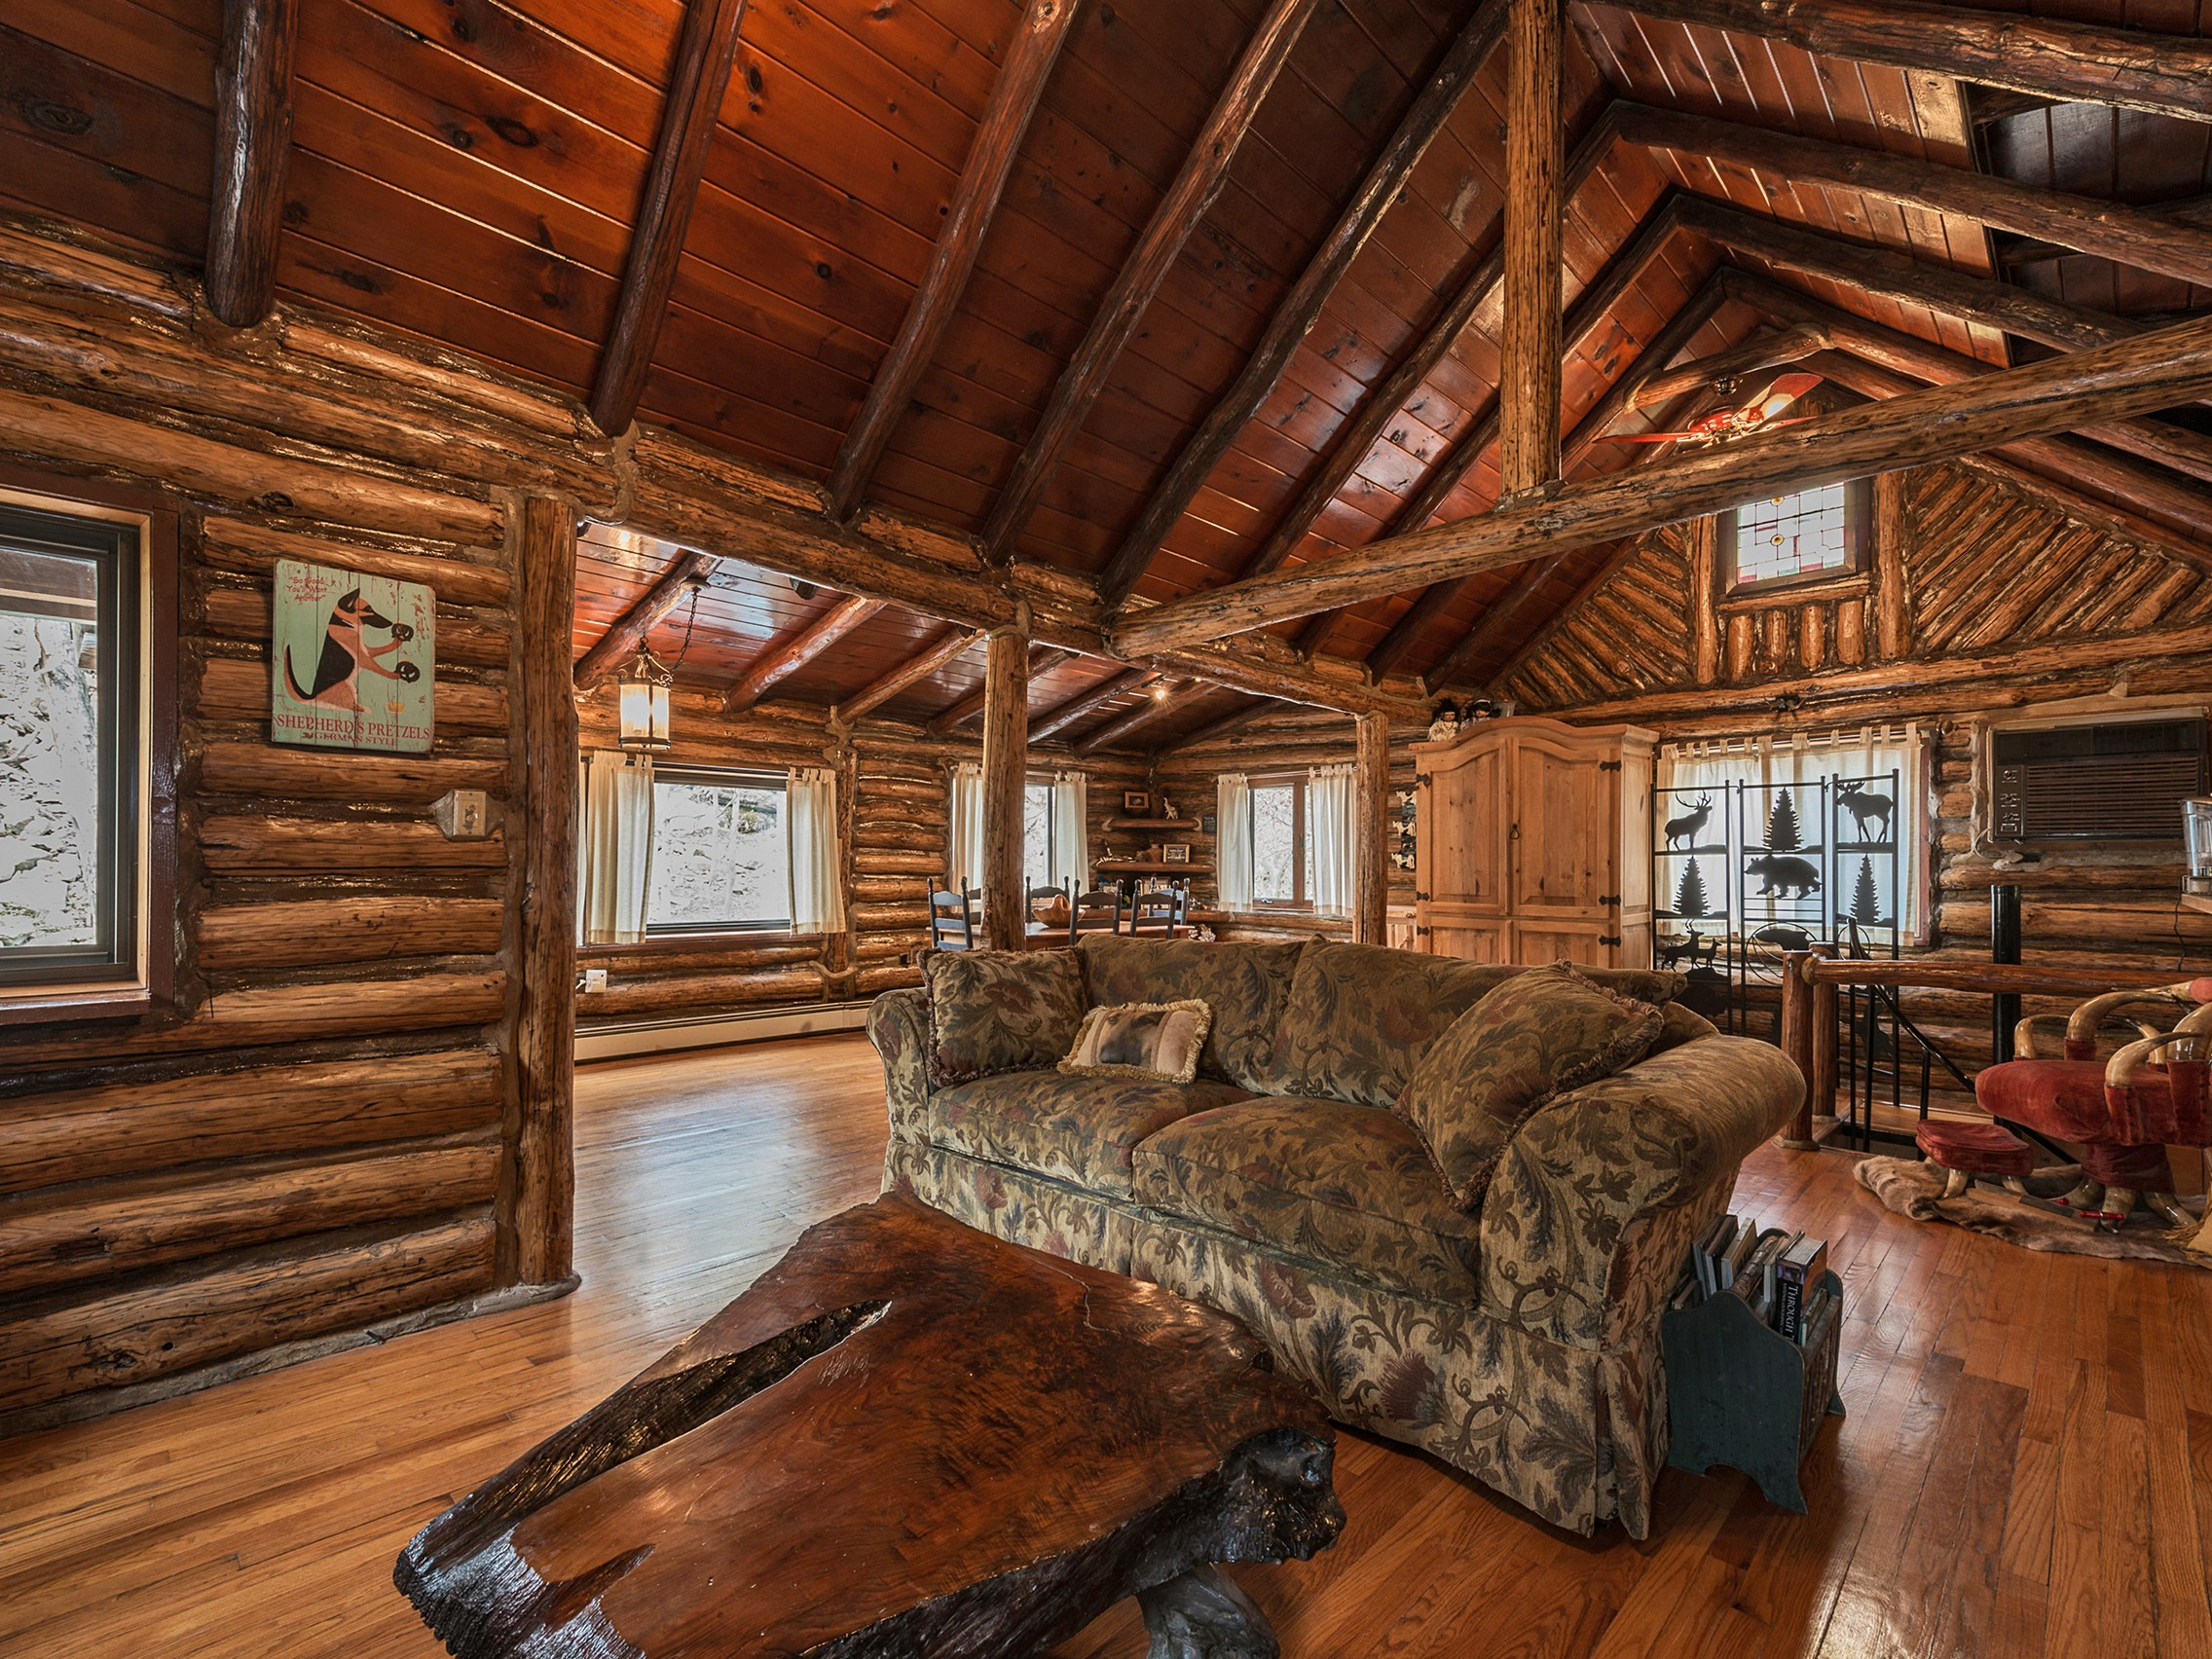 Single Family Home for Sale at Forest Knolls Log Cabin 342 East Shore Road Warwick, New York 10925 United States